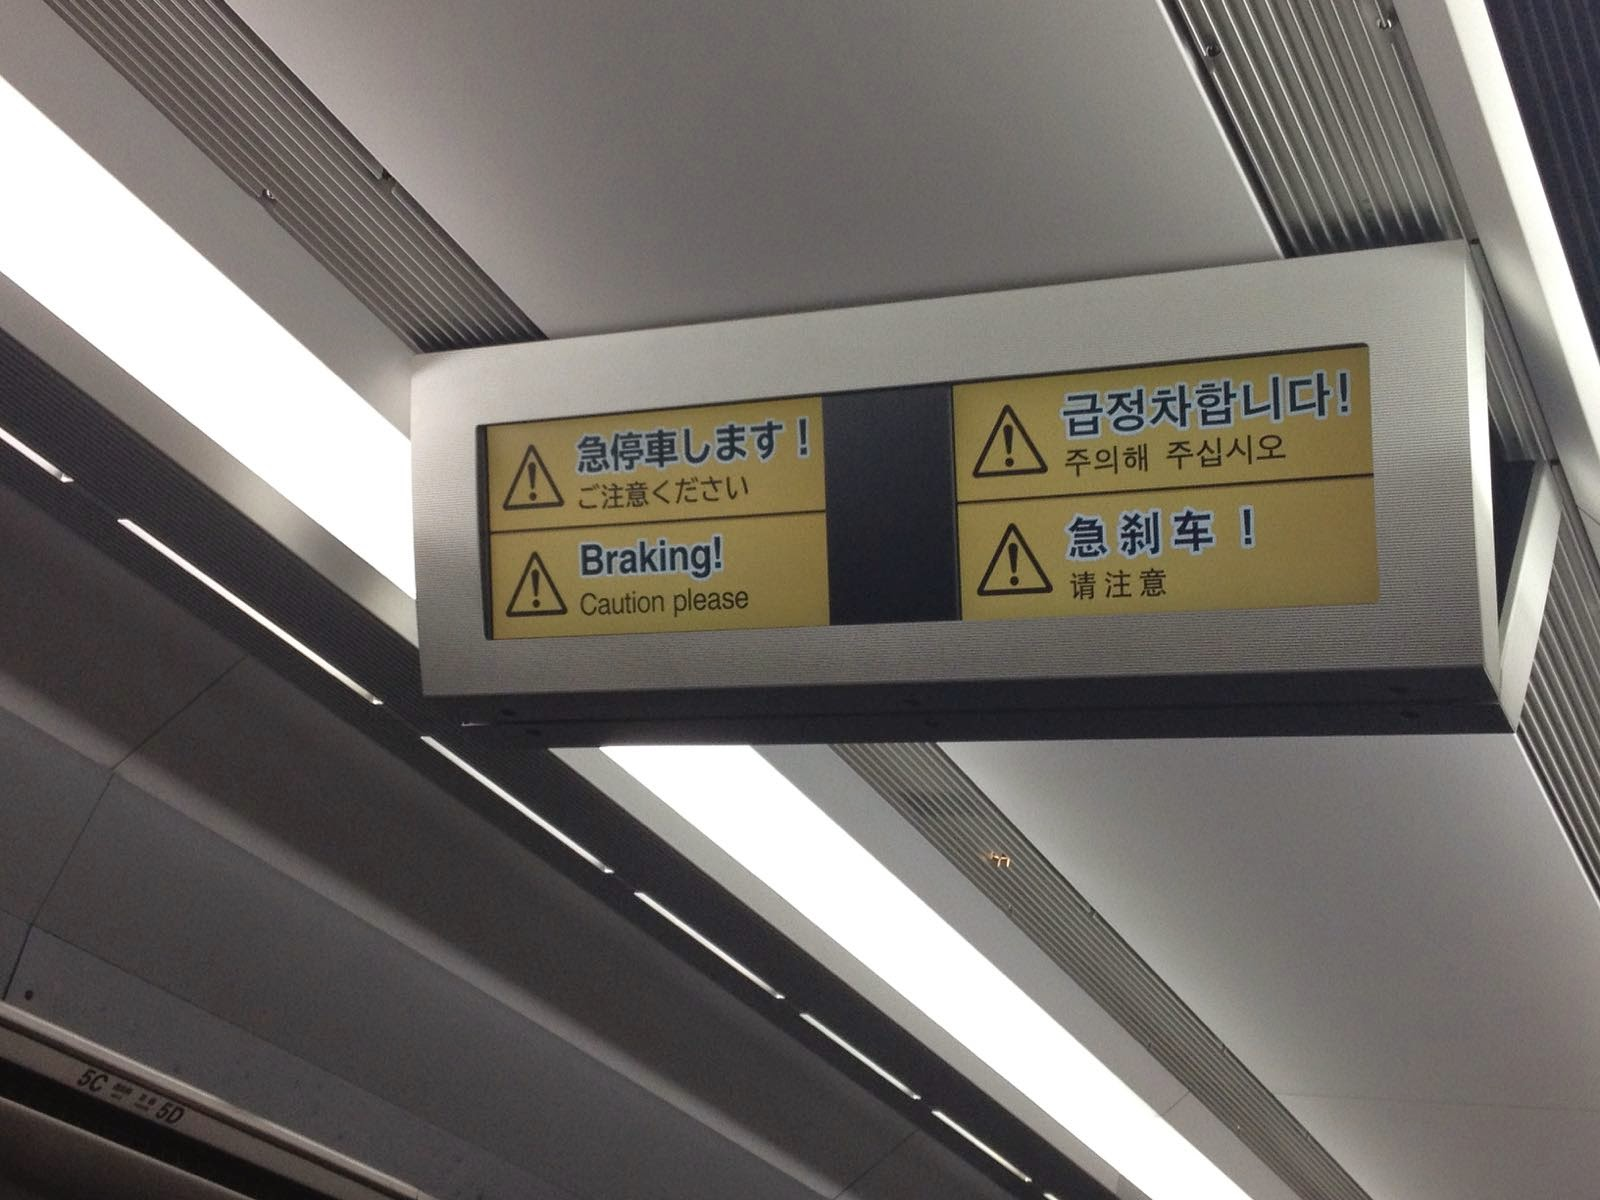 The train came to an emergency stop... the signs made it clear we were stopping :)